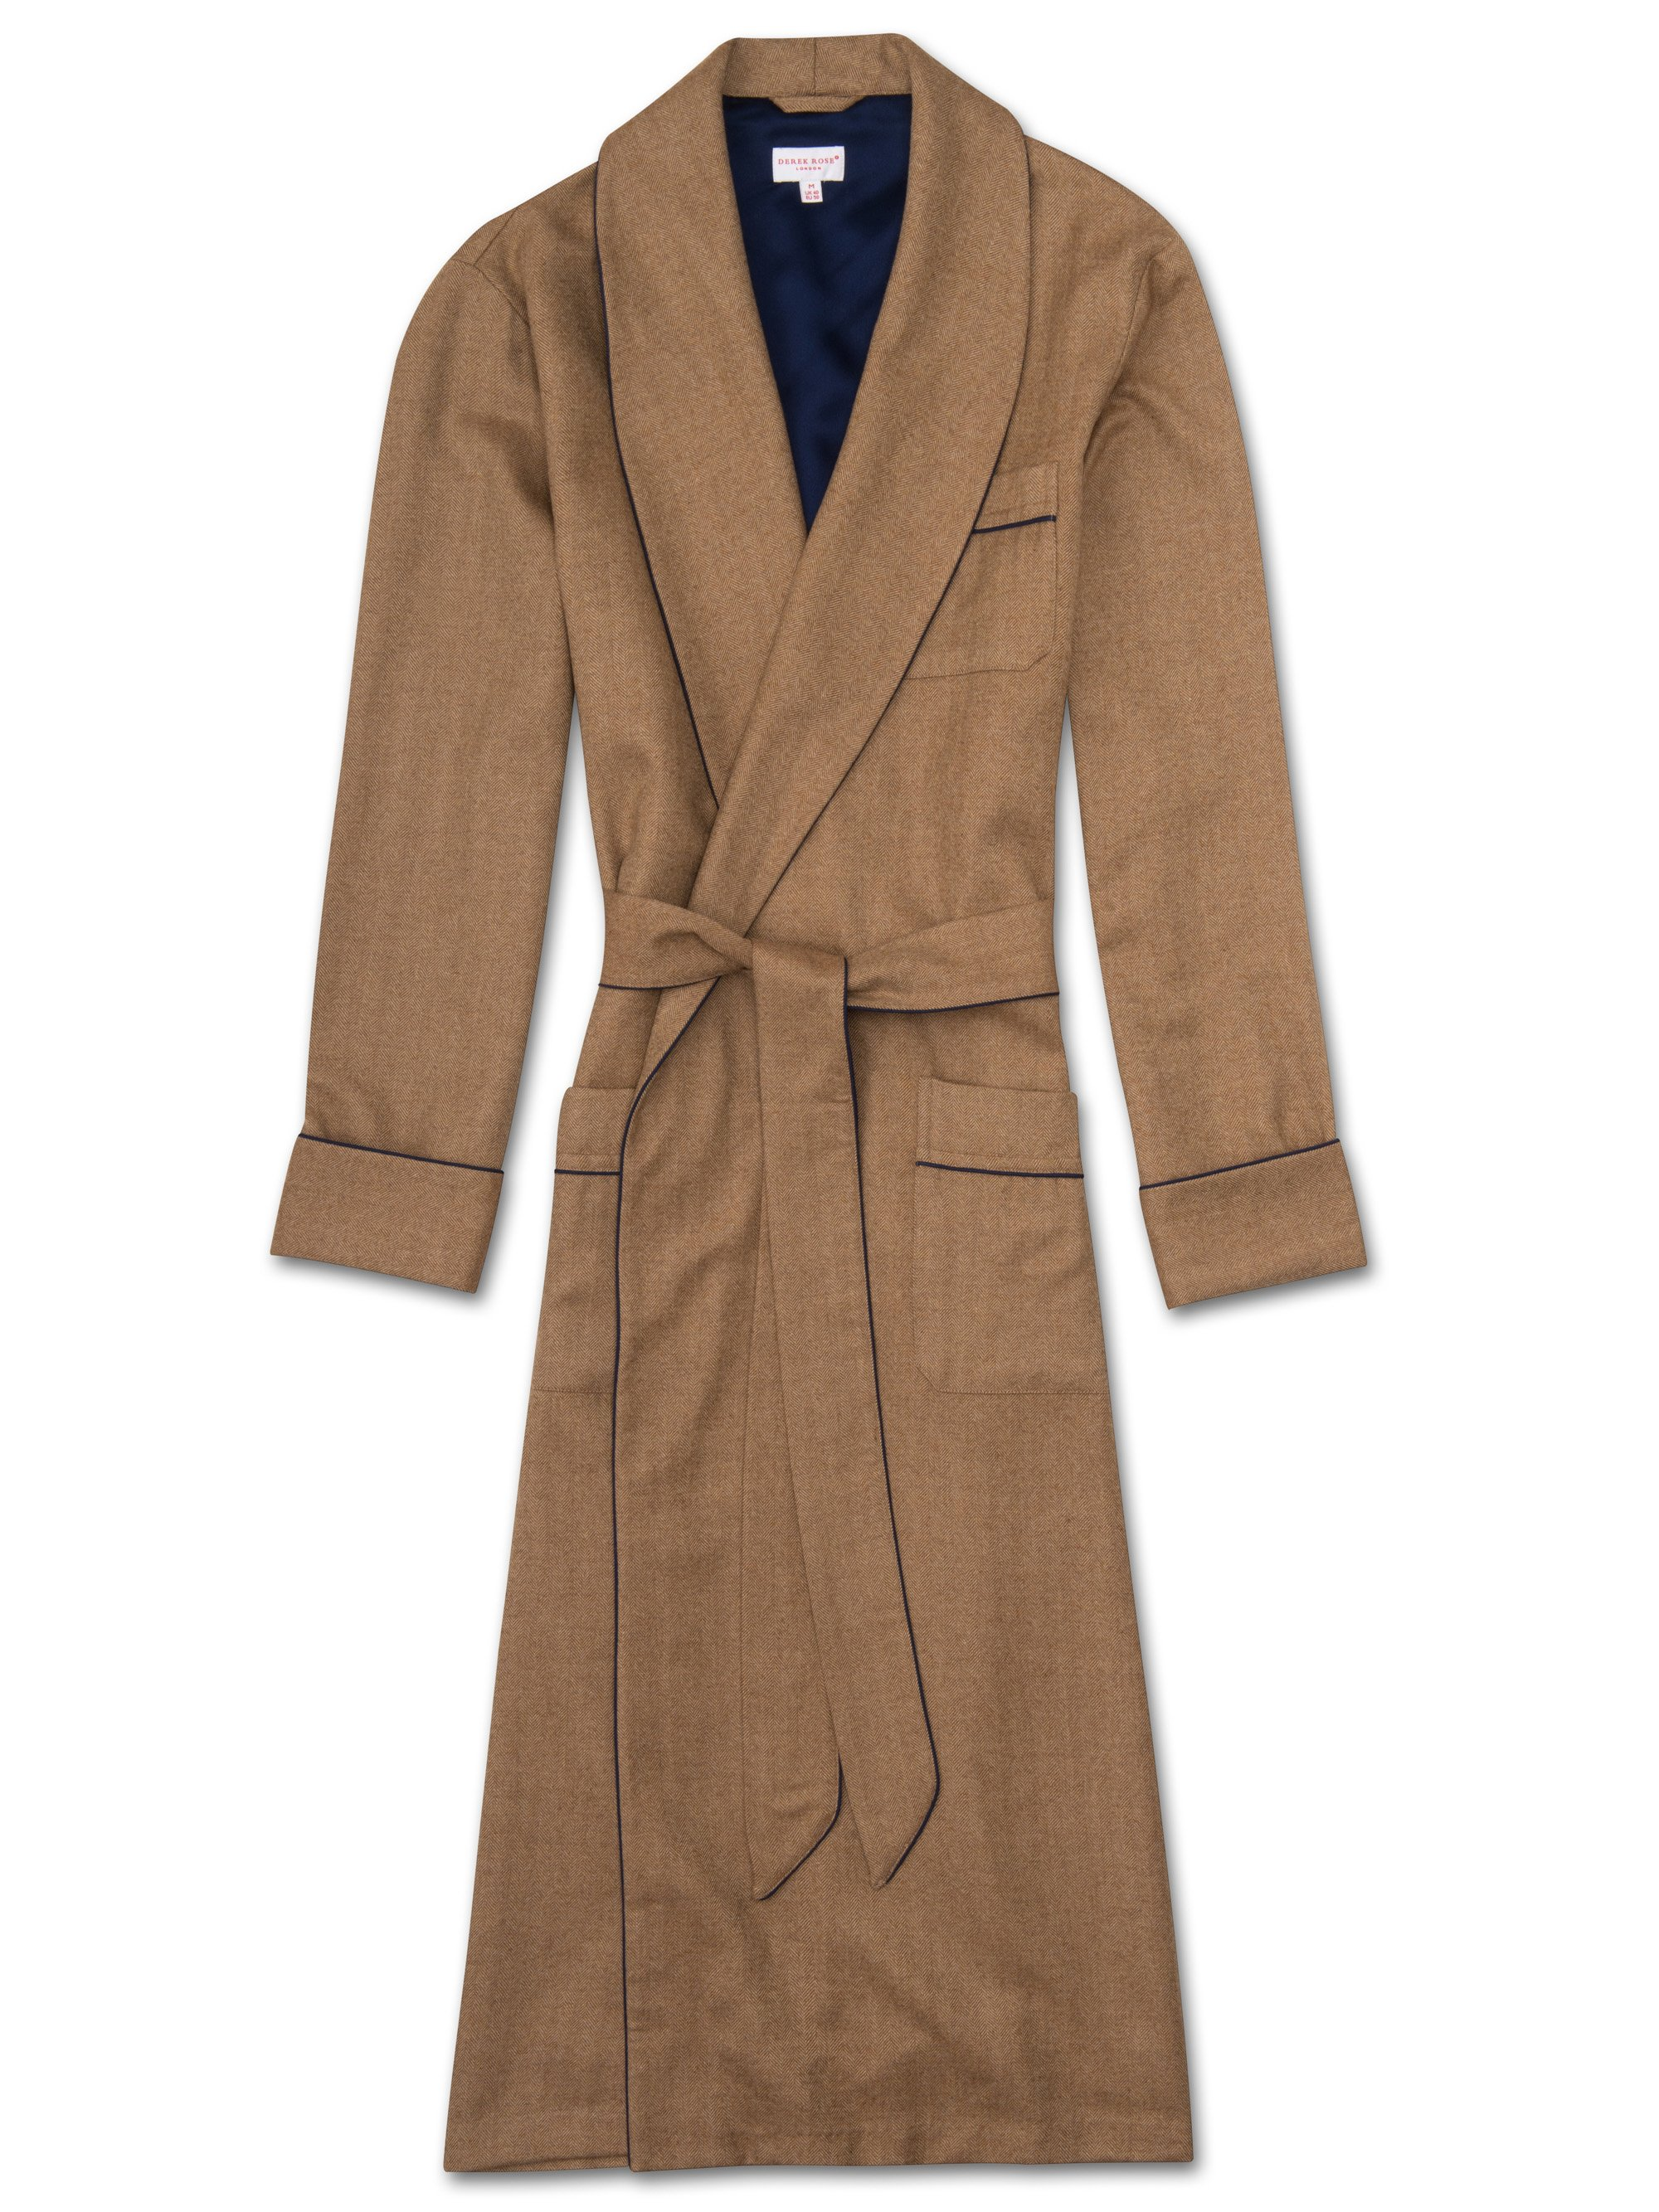 Men's Cashmere Dressing Gown Duke Pure Cashmere Camel